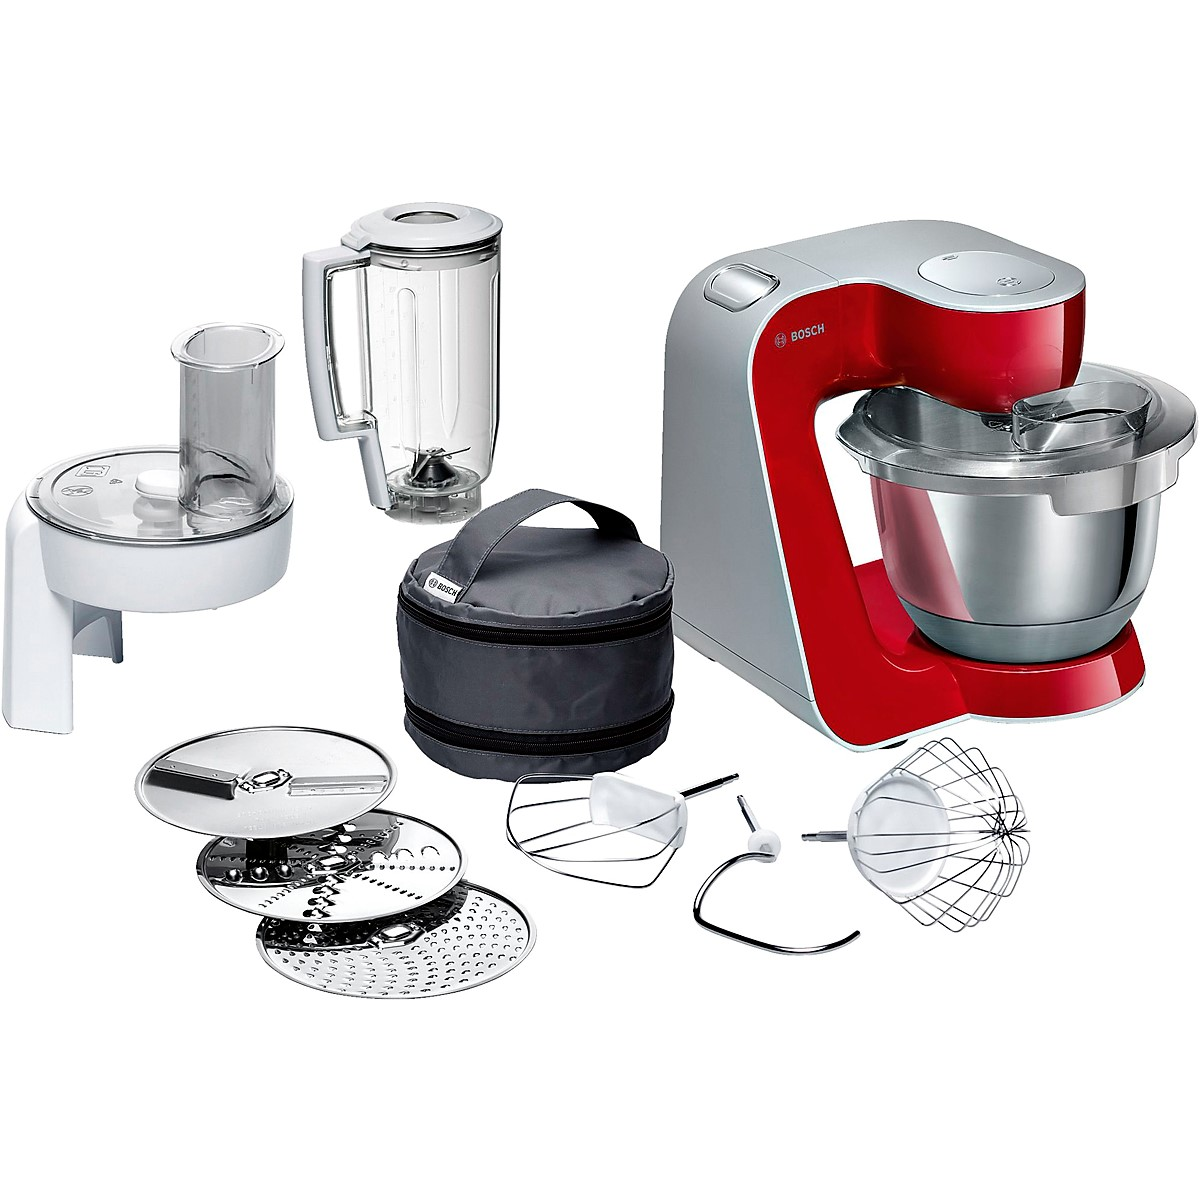 Bosch - Kitchen Machine MUM5 Styline Colour red silver 4